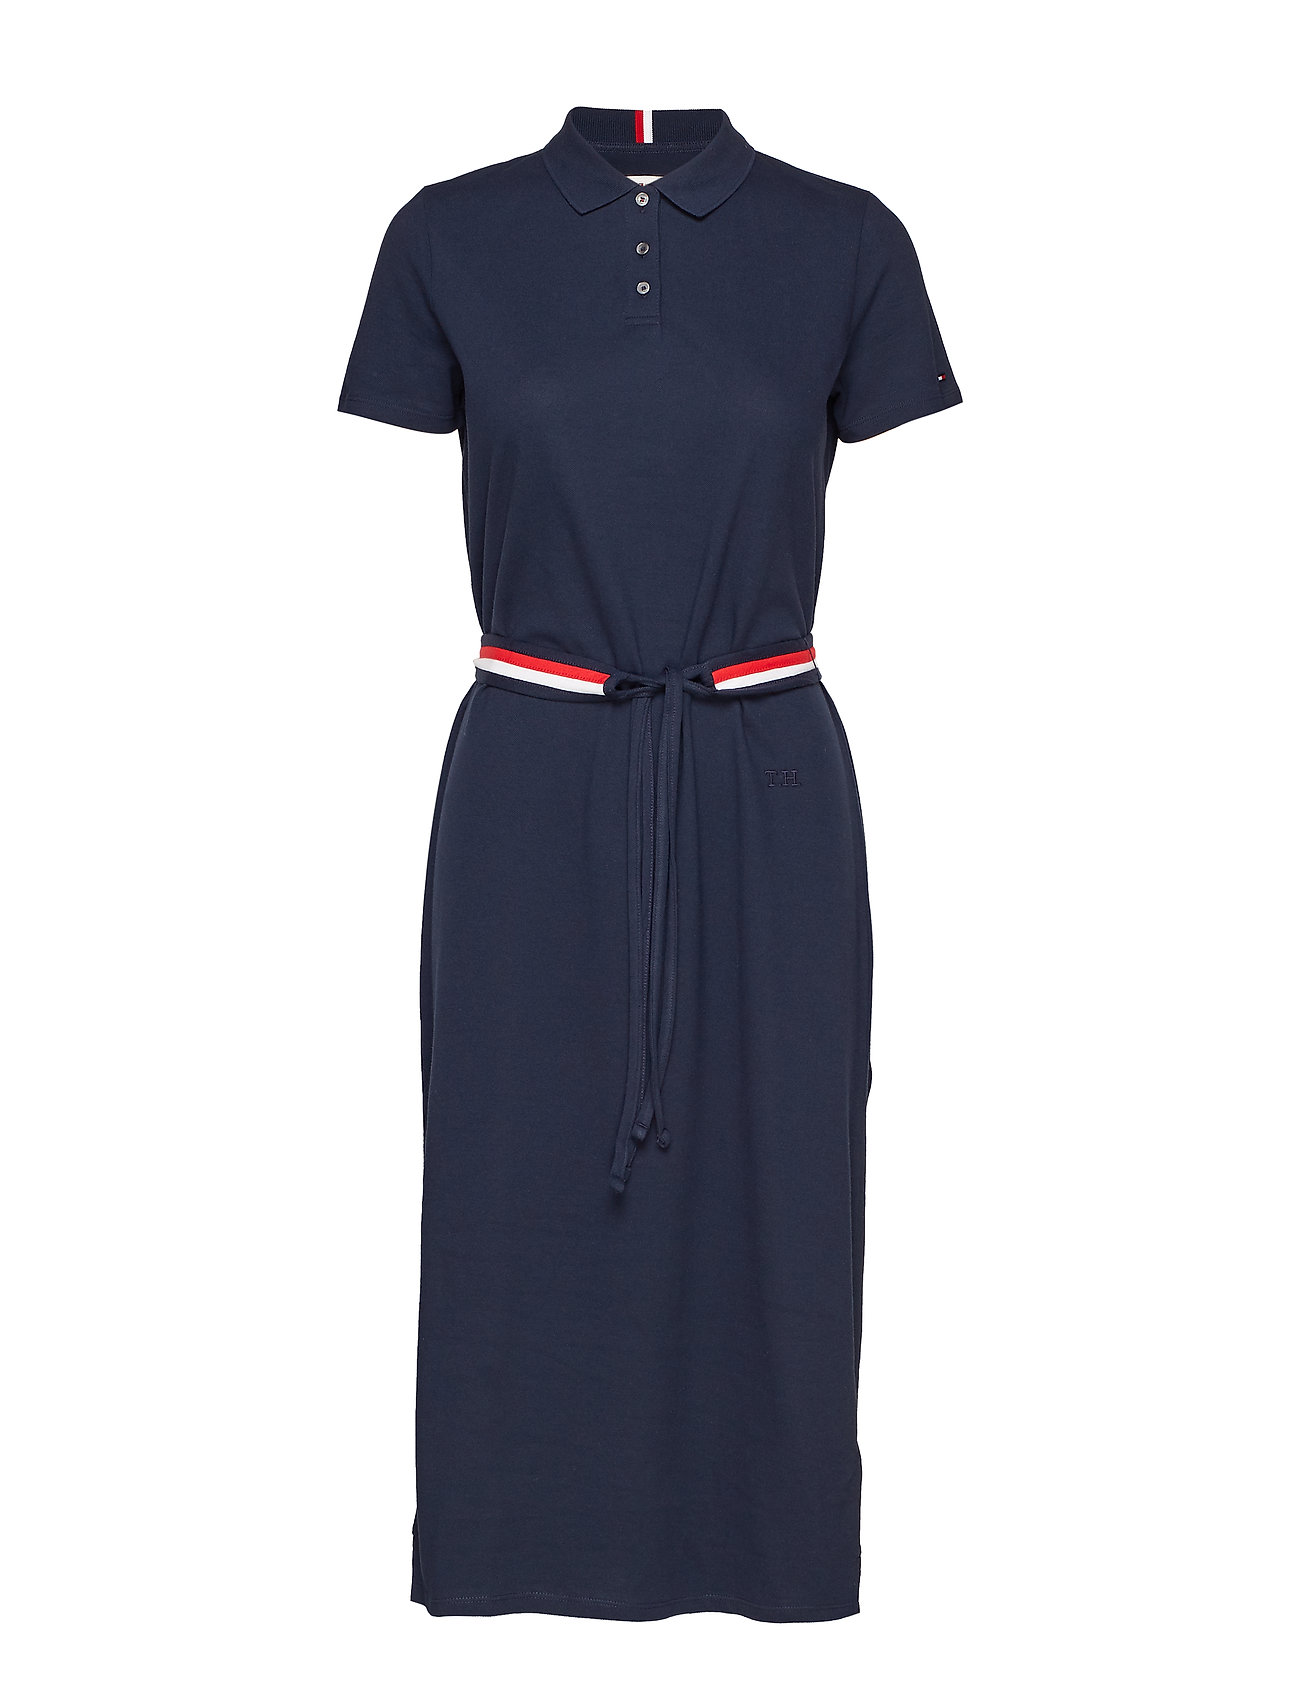 Tommy Hilfiger TH ESSENTIAL POLO DR - SKY CAPTAIN